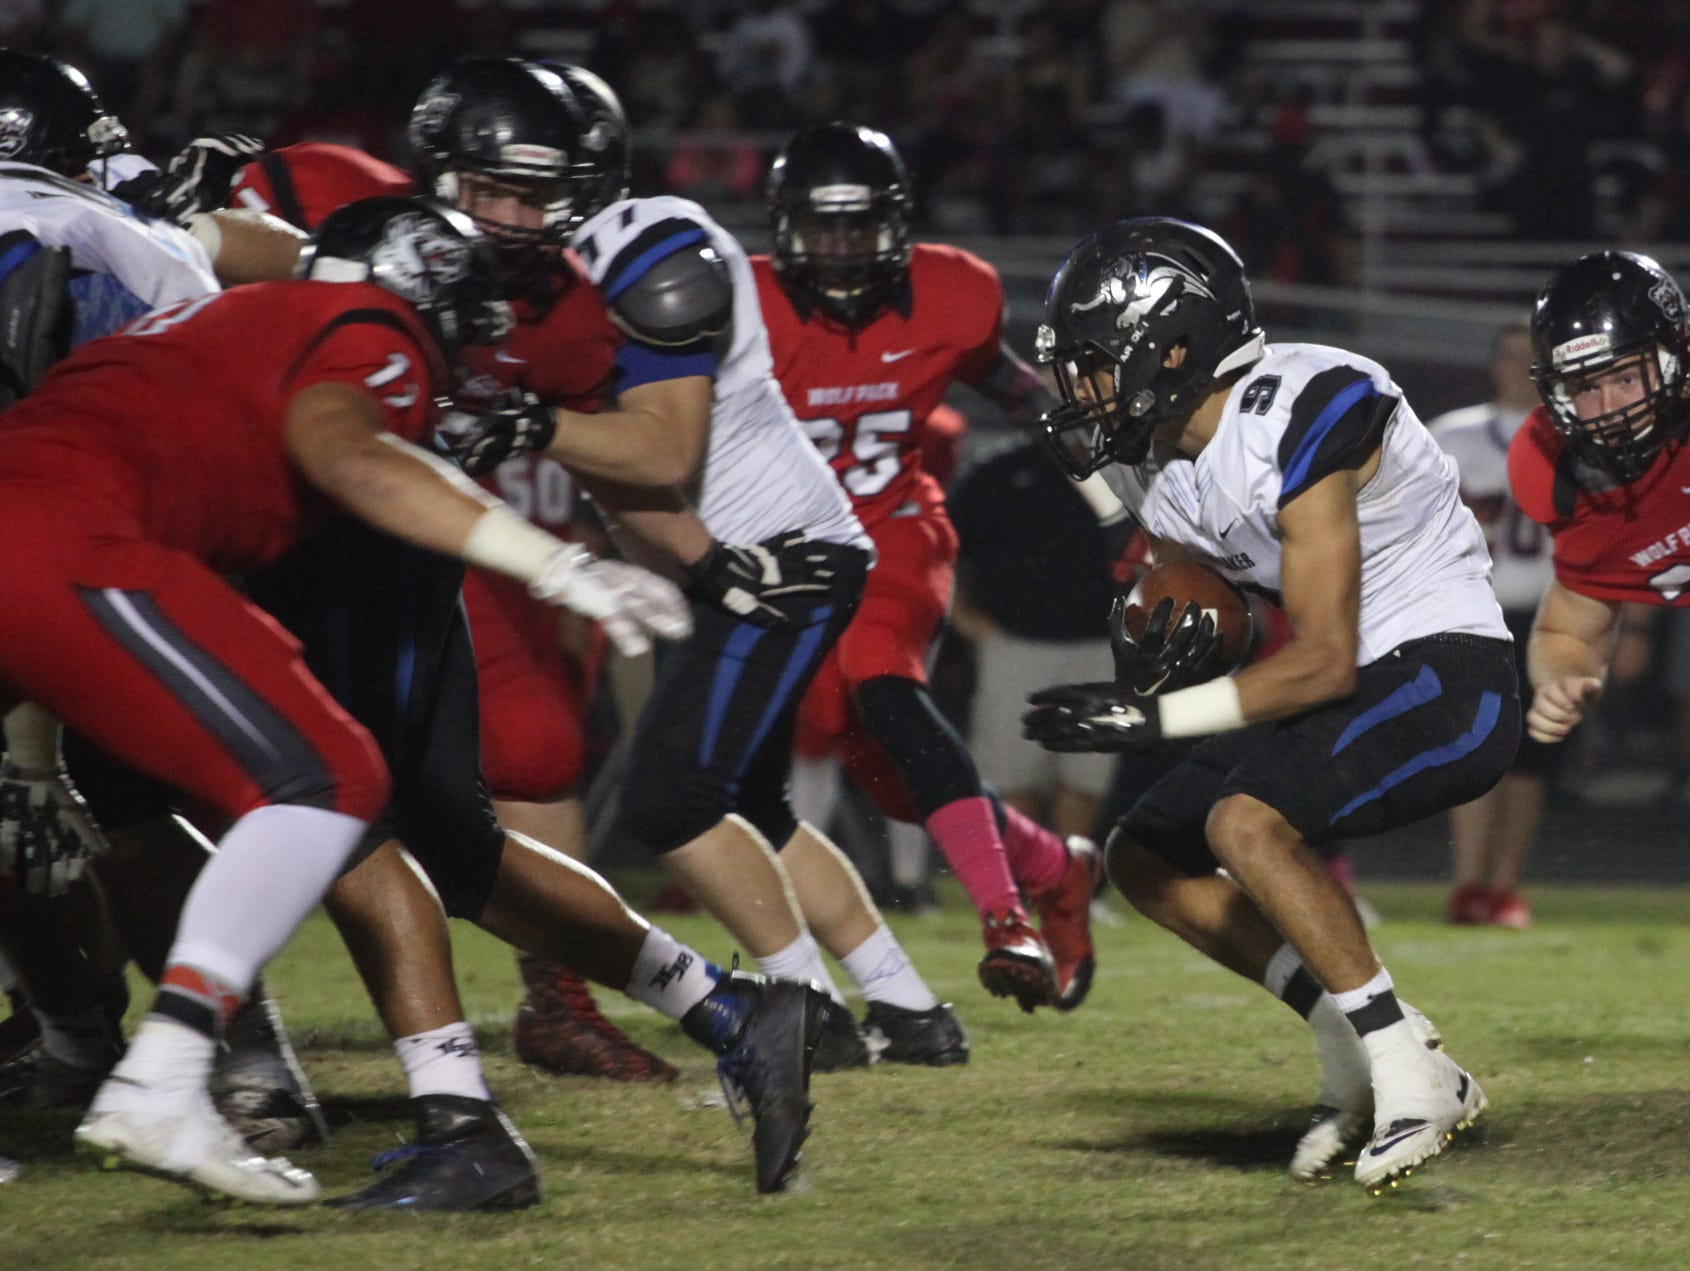 South Fort Myers and Ida Baker compete during a game at South Fort Myers on Friday night.